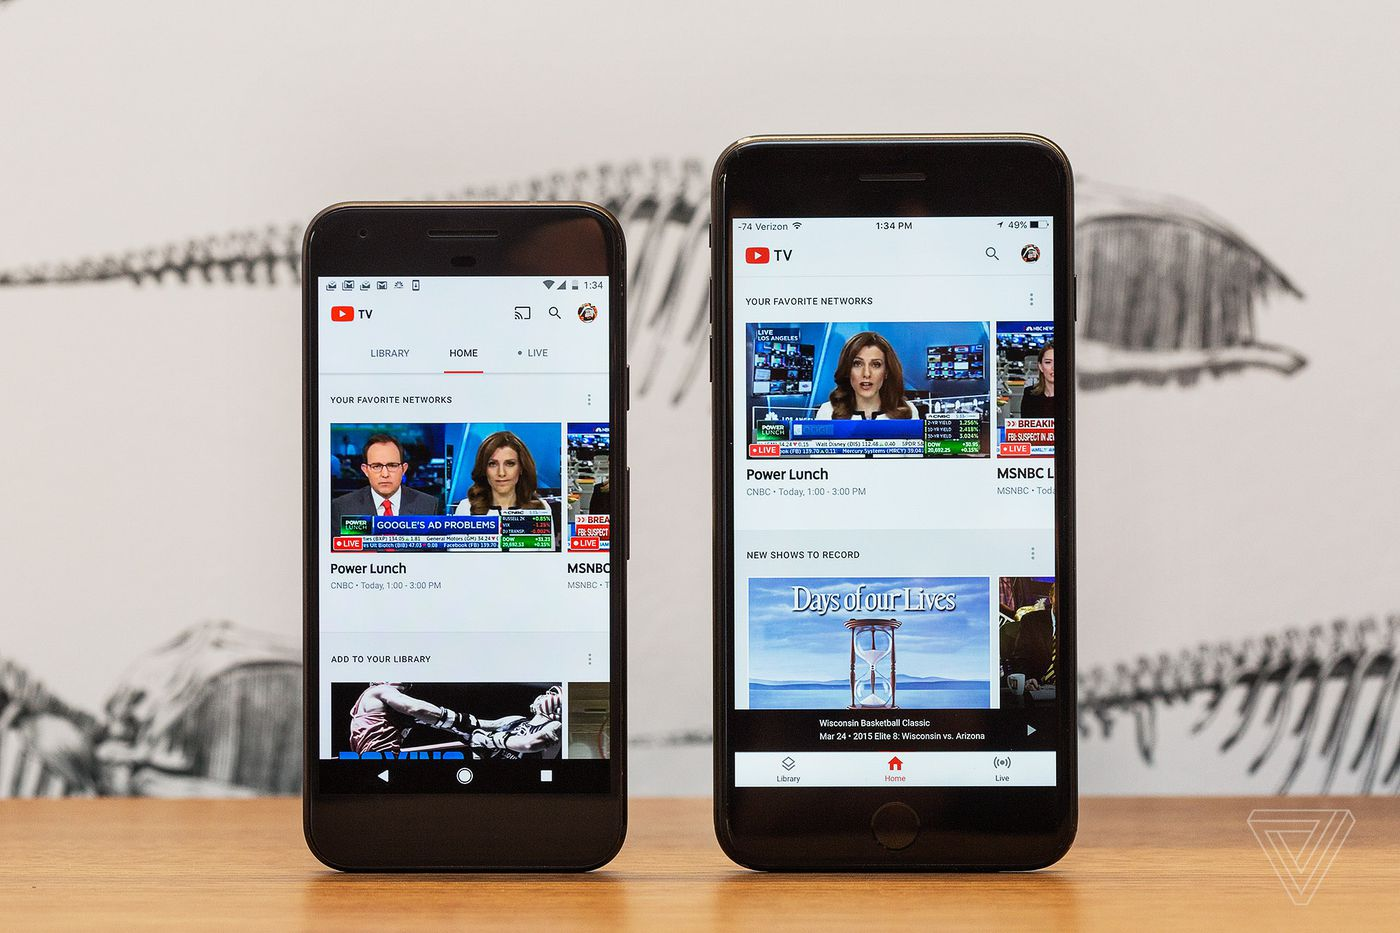 YouTube TV is adding more channels, but it's also getting